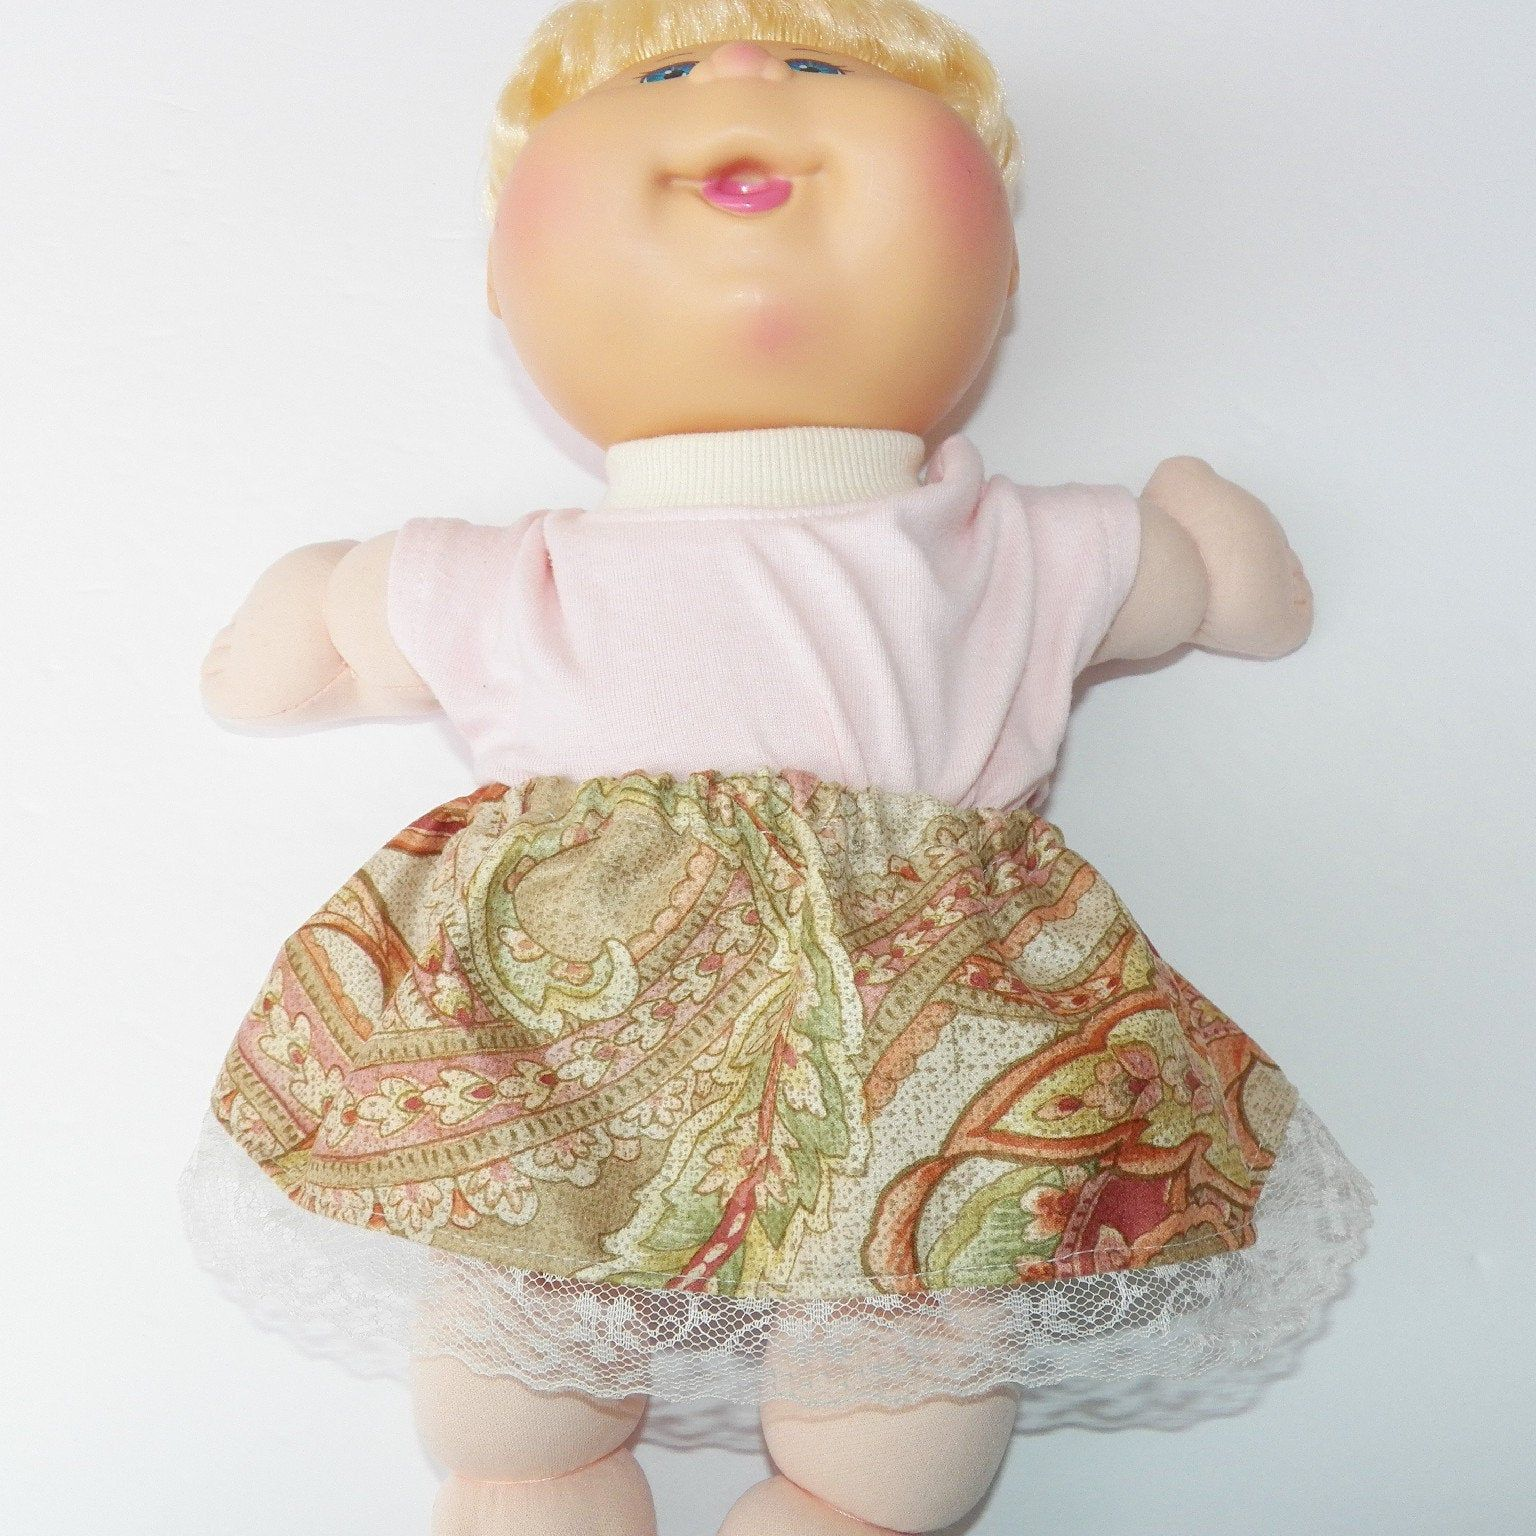 Pin On Cabbage Patch Doll Clothes Kids 16 12 14 Preemie Dolls